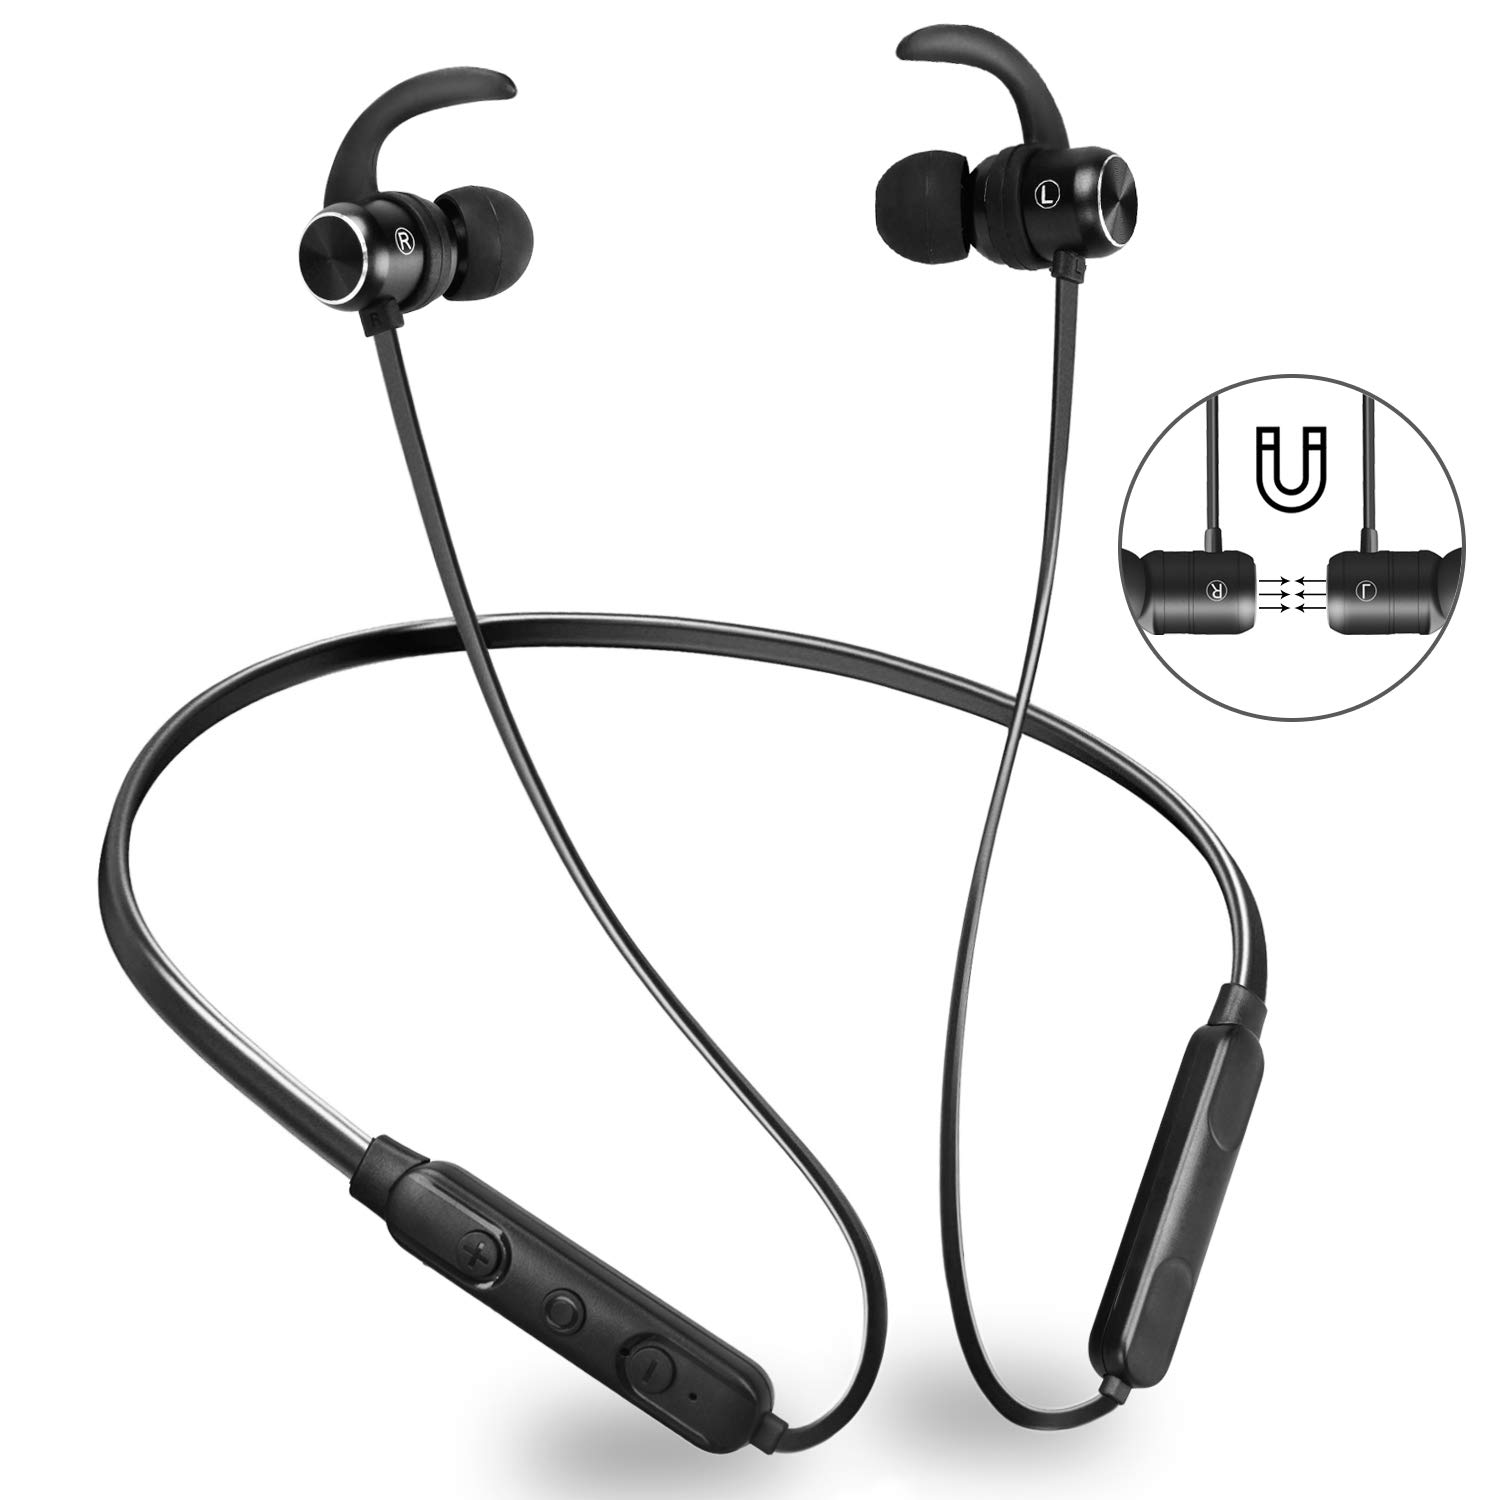 Bluetooth Sport Headphones,GOOJODOQ Bluetooth 4.1 Wireless Stereo & IPX6 Waterproof In-ear Magnetic Sport Earbuds, Wireless Sport Earphones with Built-in Mic Hands-free Calling for iPhone, Samsung, Android Smartphones,Perfect for Gym and Running Workout (B